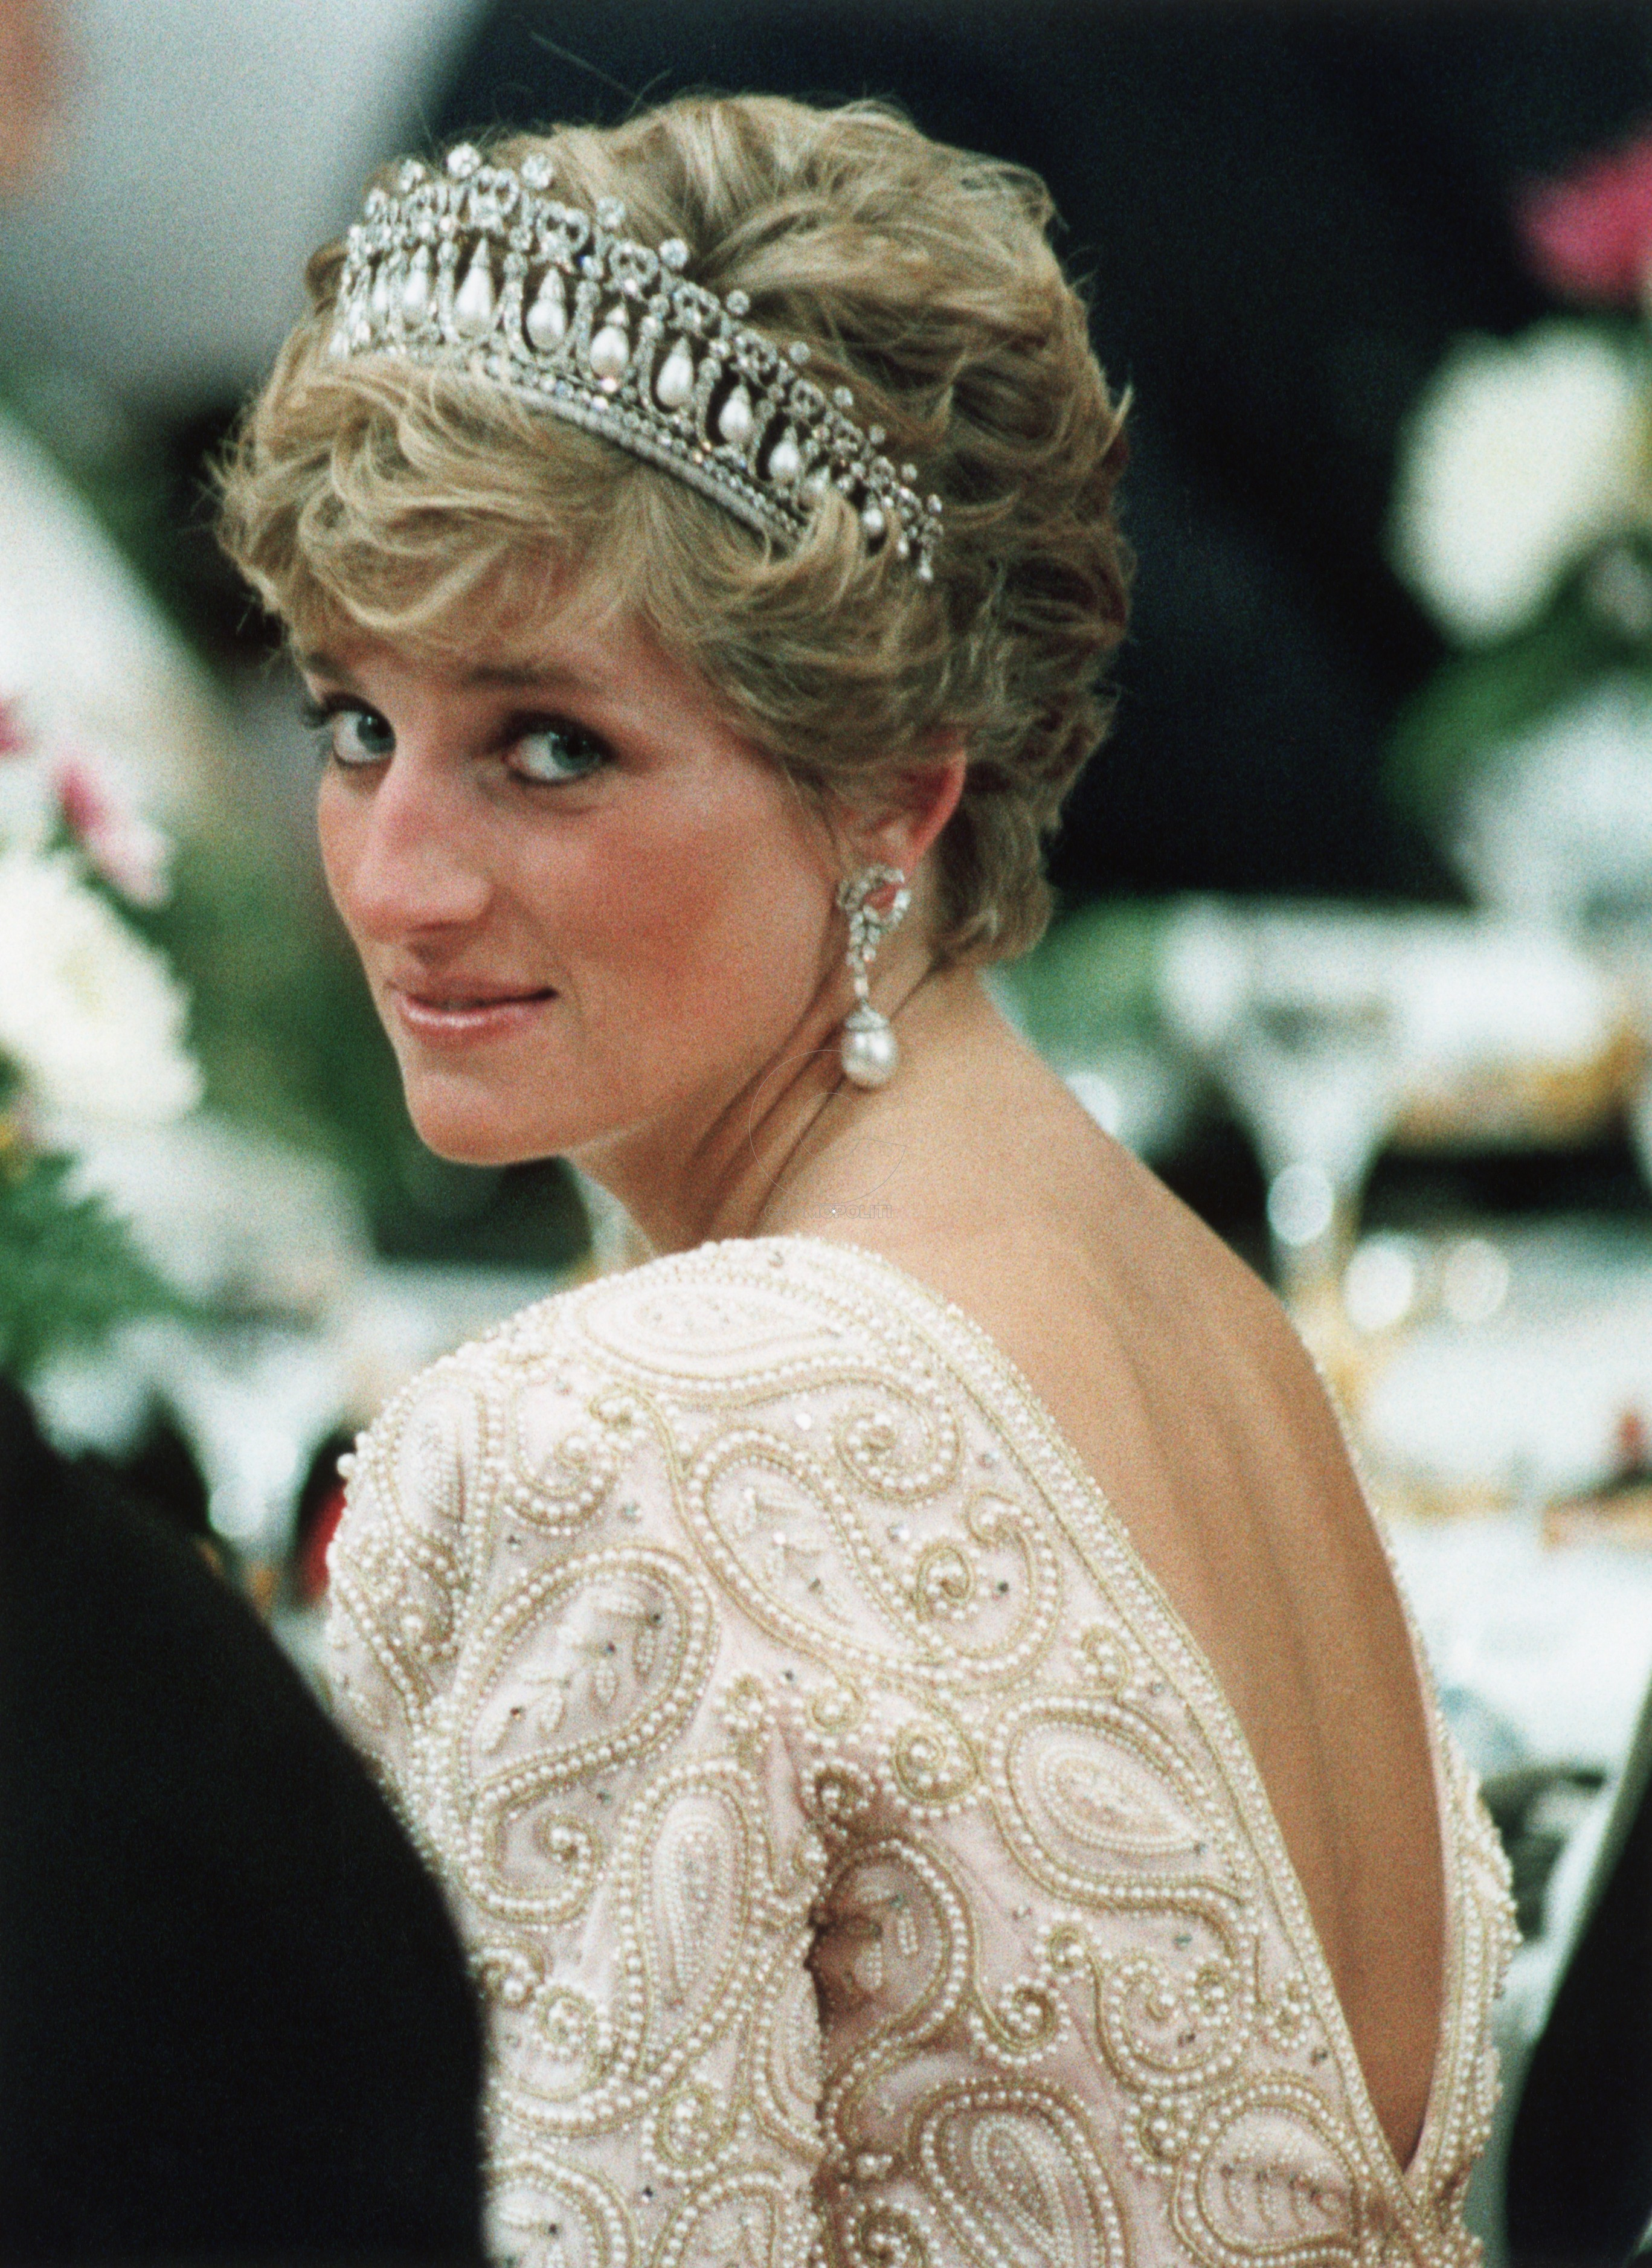 Diana, Princess of Wales, looks over her shoulder and smiles during banquet for Japanese Emperor Akihito in Tokyo November 12, 1990. REUTERS/Kimimasa Mayama (JAPAN) BEST QUALITY AVAILABLE - RTR1WYM1